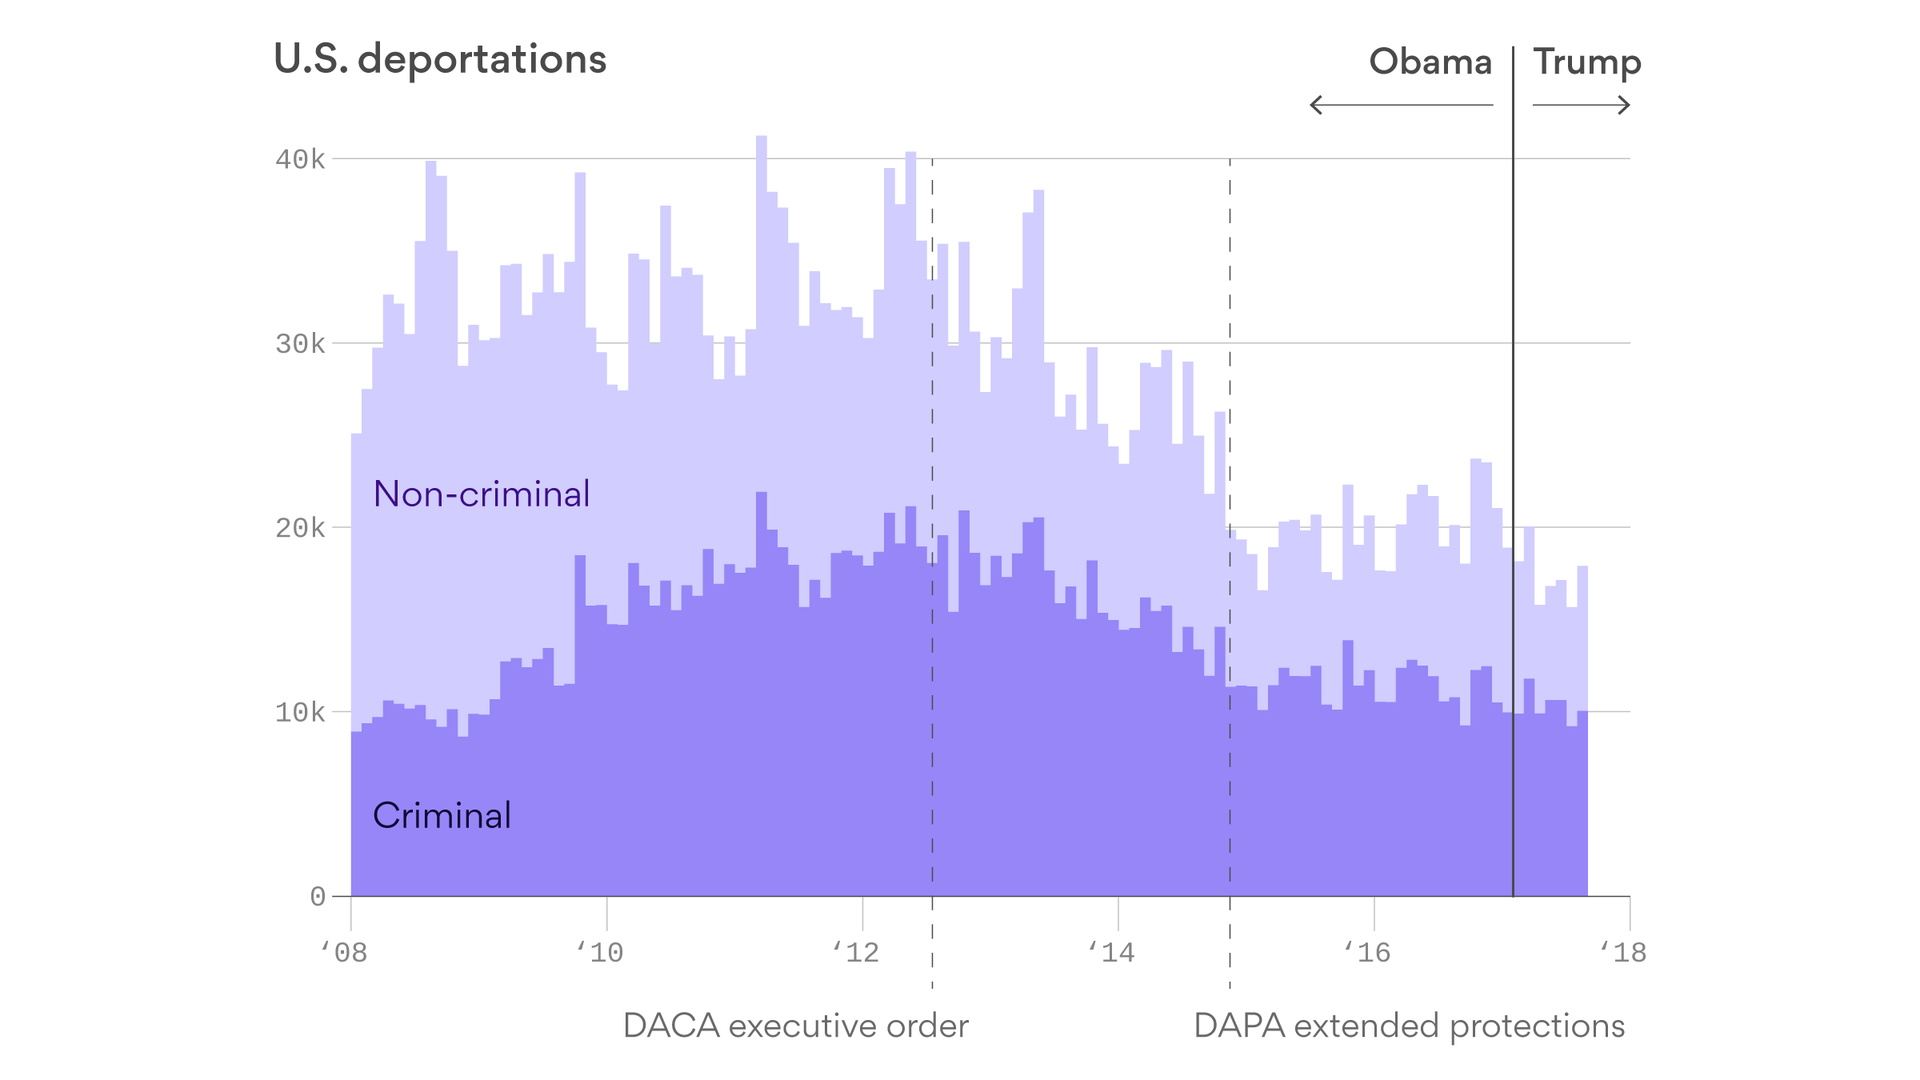 Trump had fewer deportations than Obama's first year